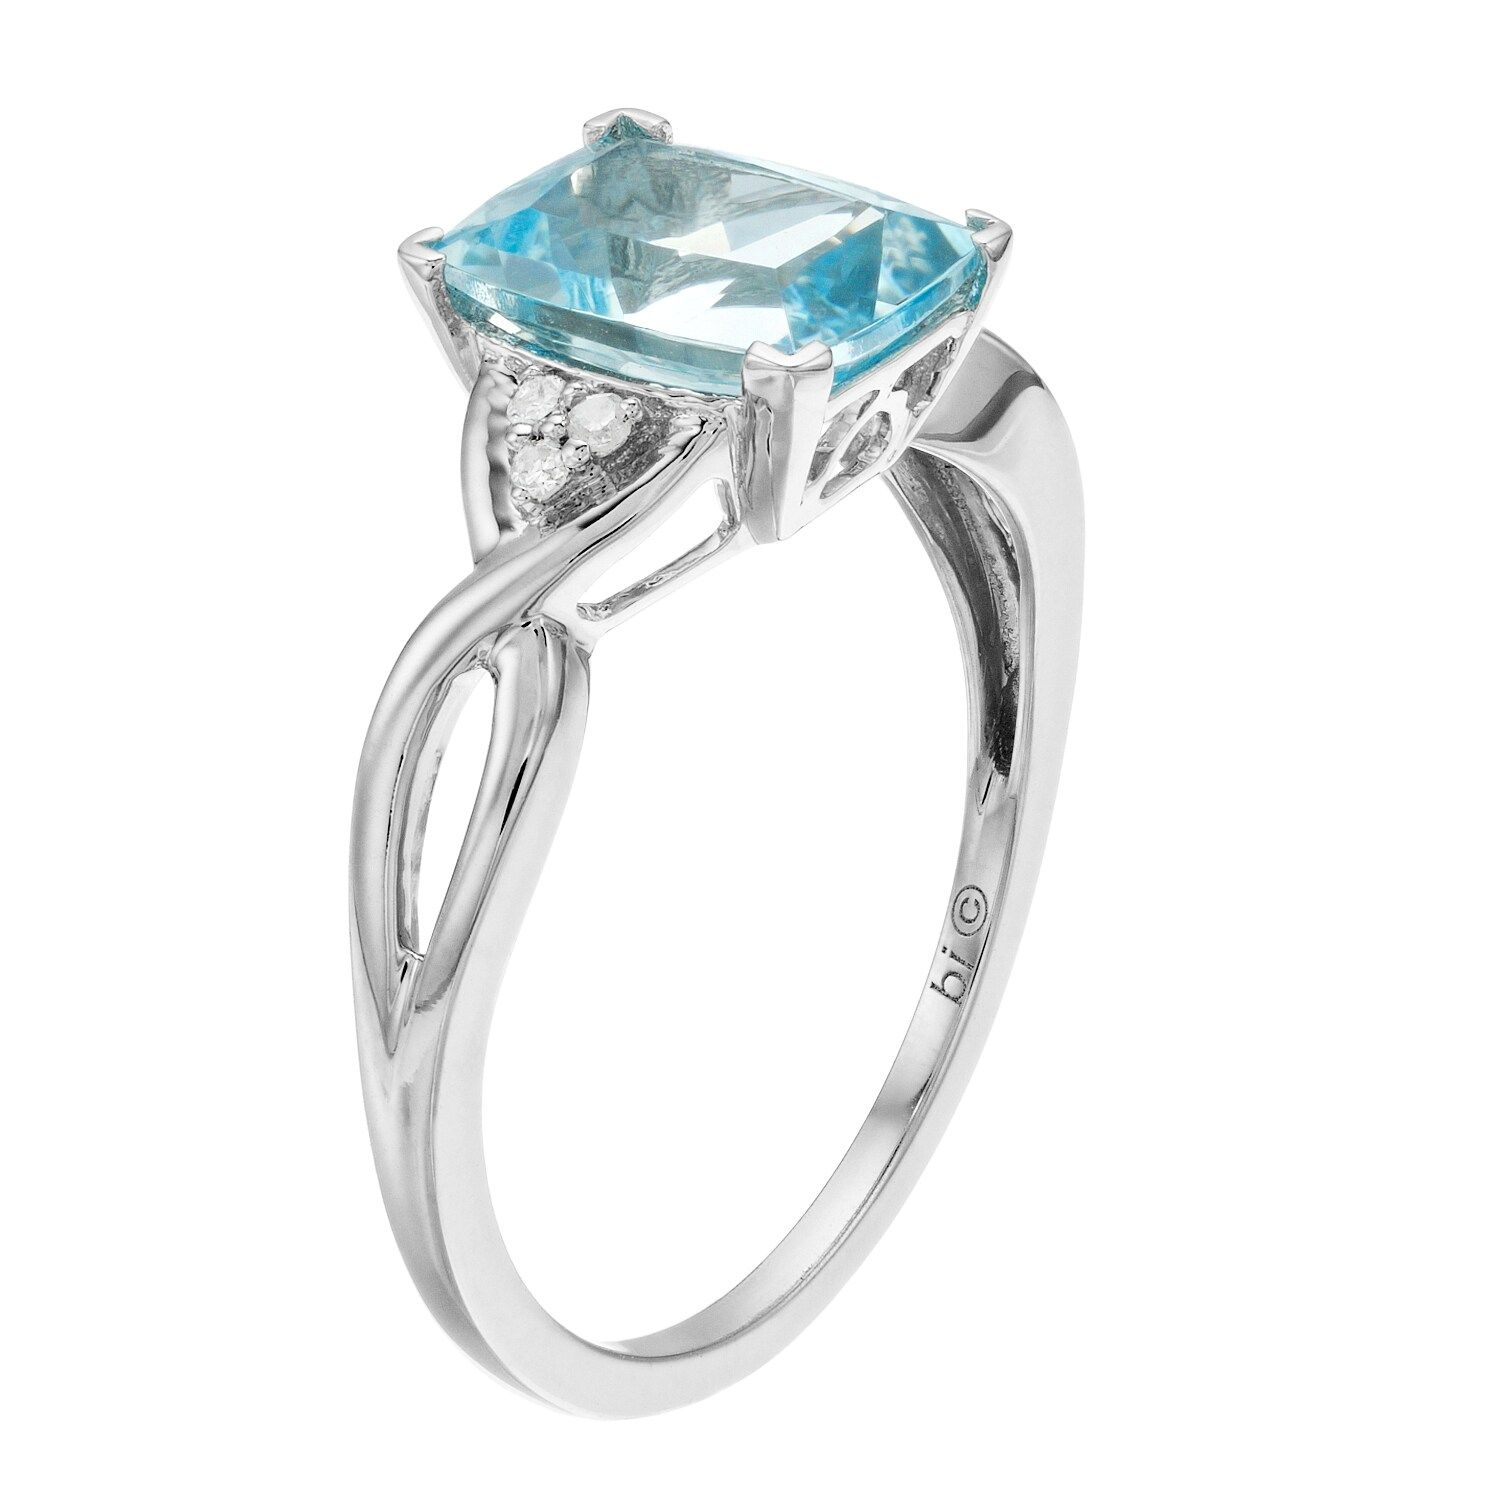 10k White Gold Aquamarine Diamond Accent Ring Affiliate Gold White Aquamarine Ring In 2020 Diamond Accent Ring Diamond Accent Rings